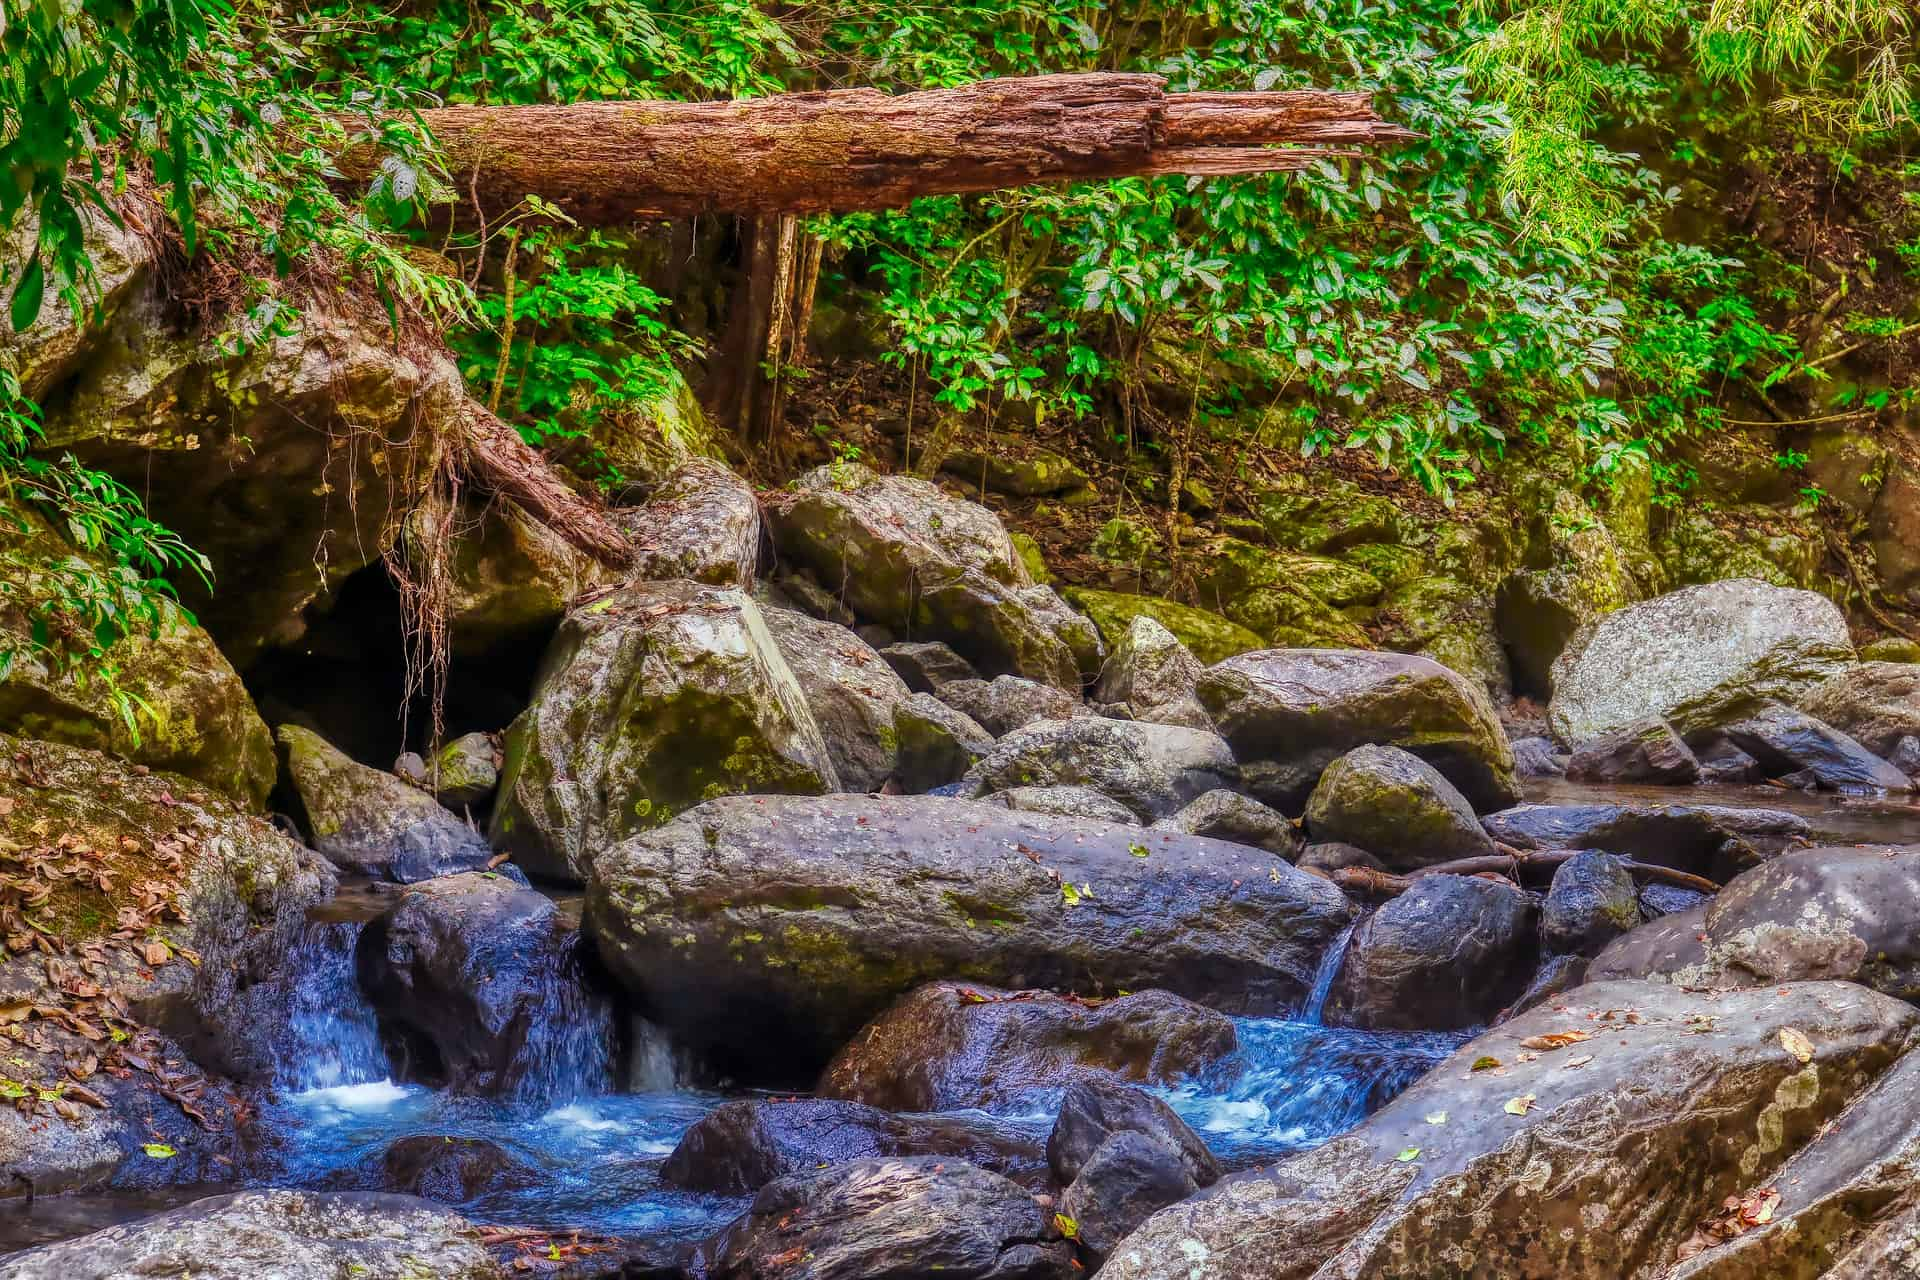 Pai's Pam Bok Waterfall is a Secluded Hidden Gem of Thailand